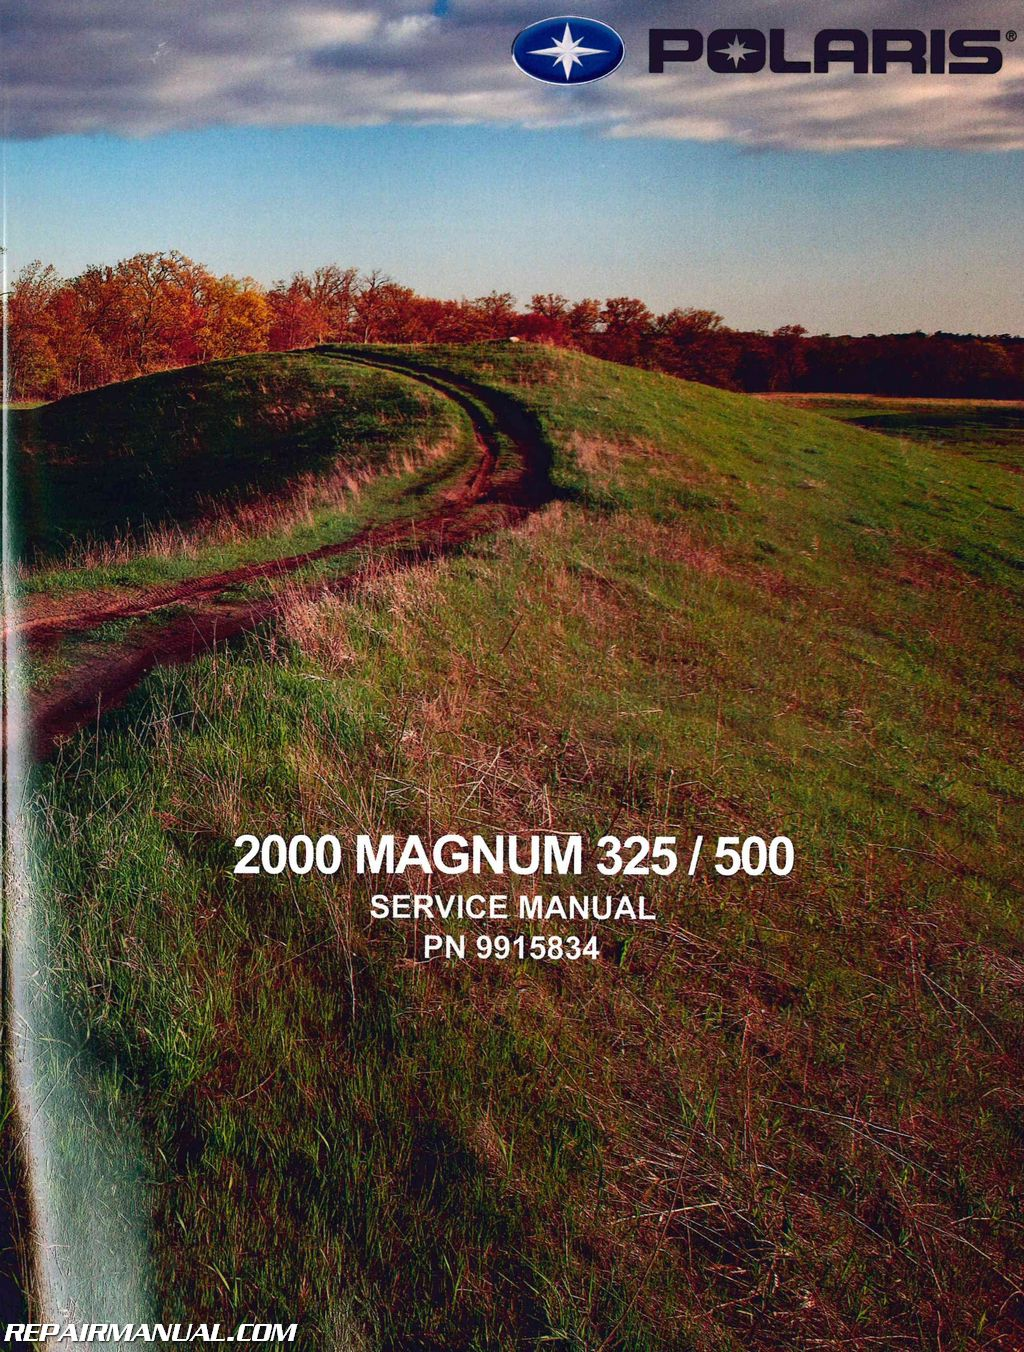 2000 Polaris Magnum 325 500 Atv Service Manual   9915834